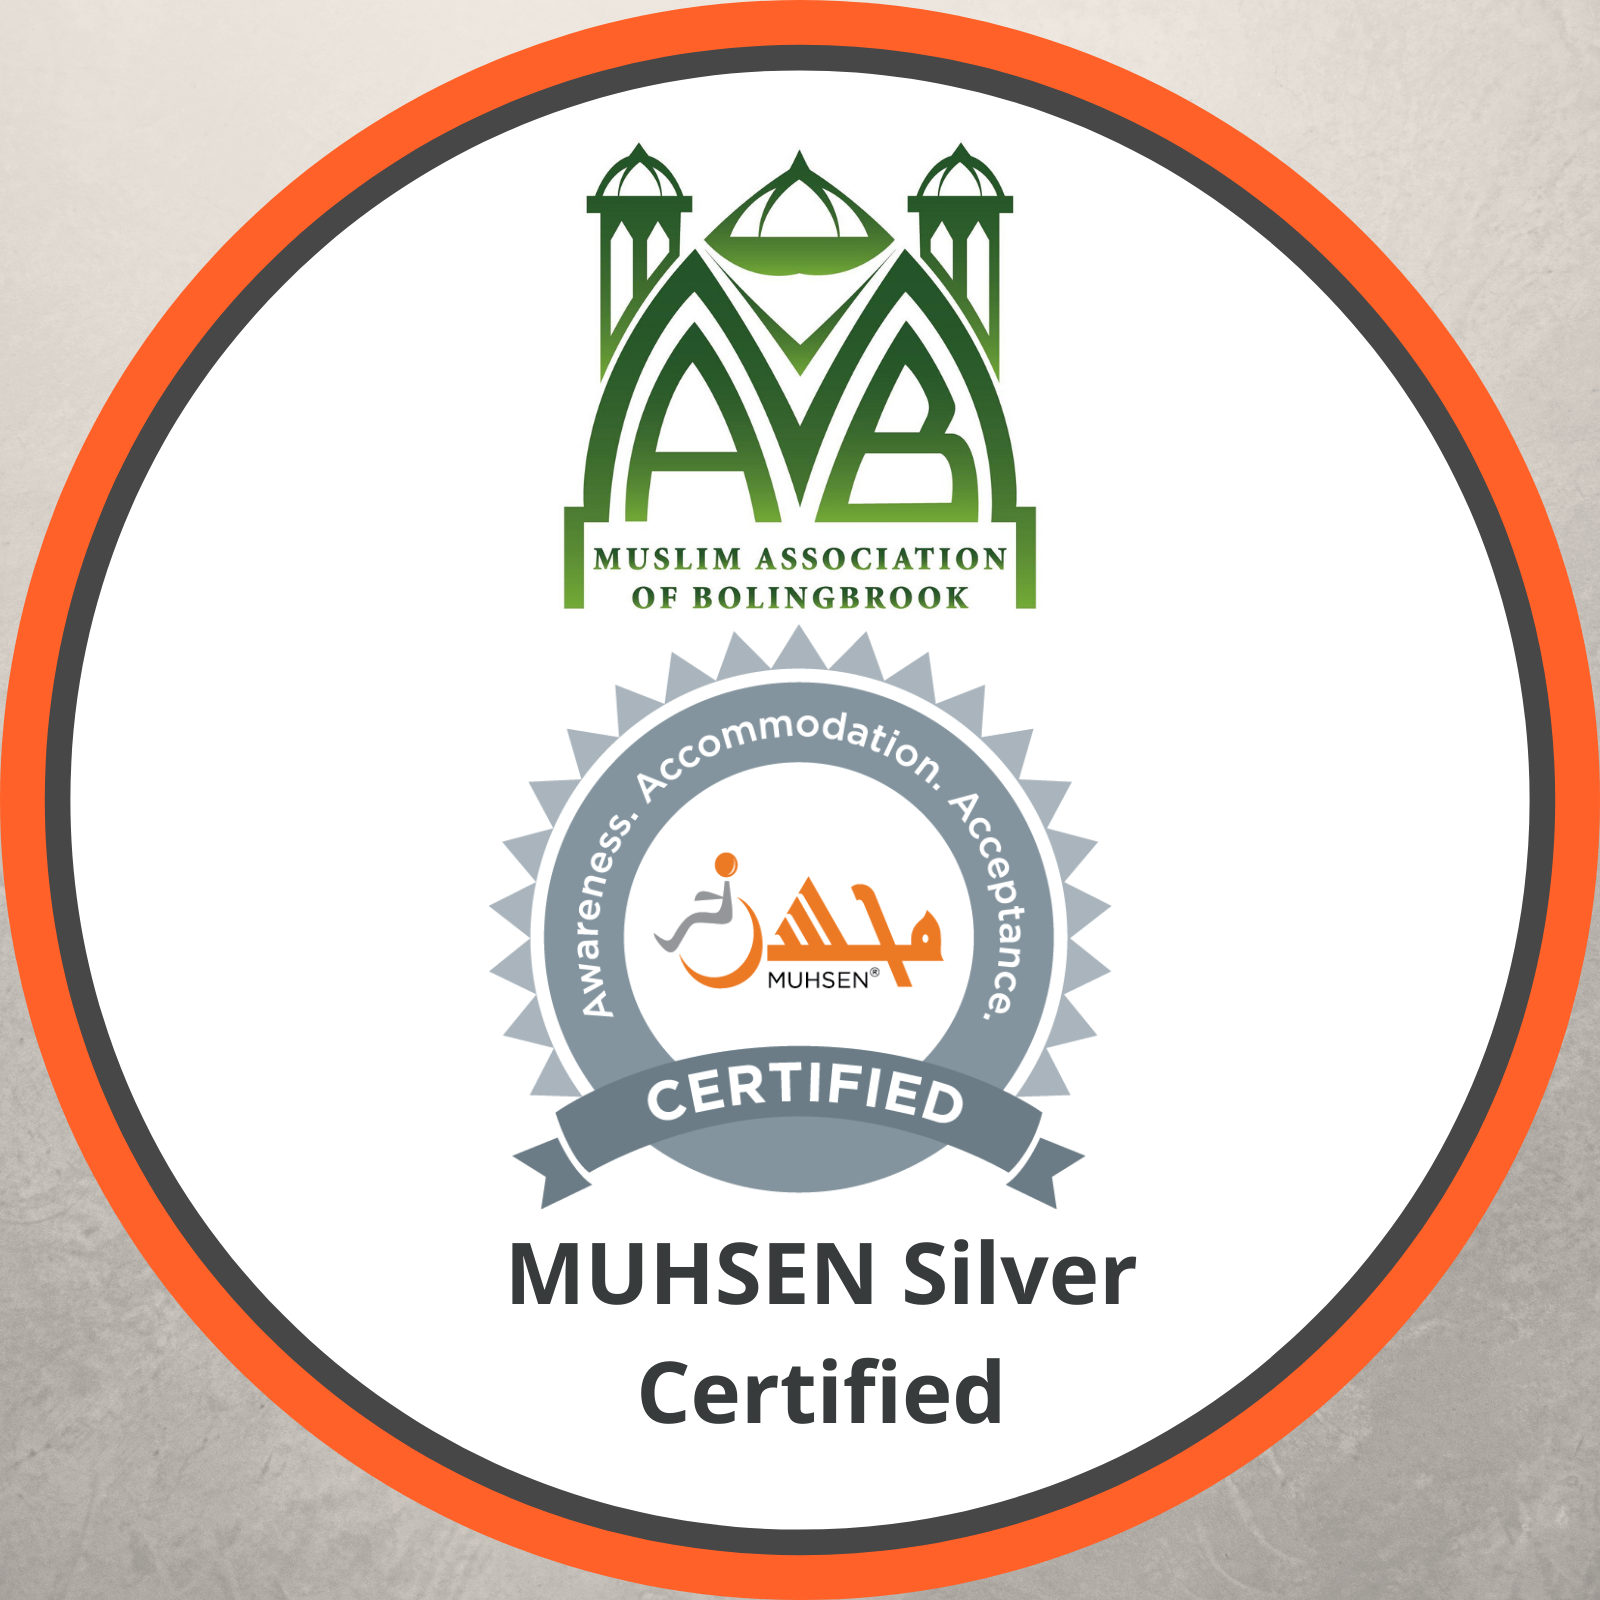 MUHSEN certification